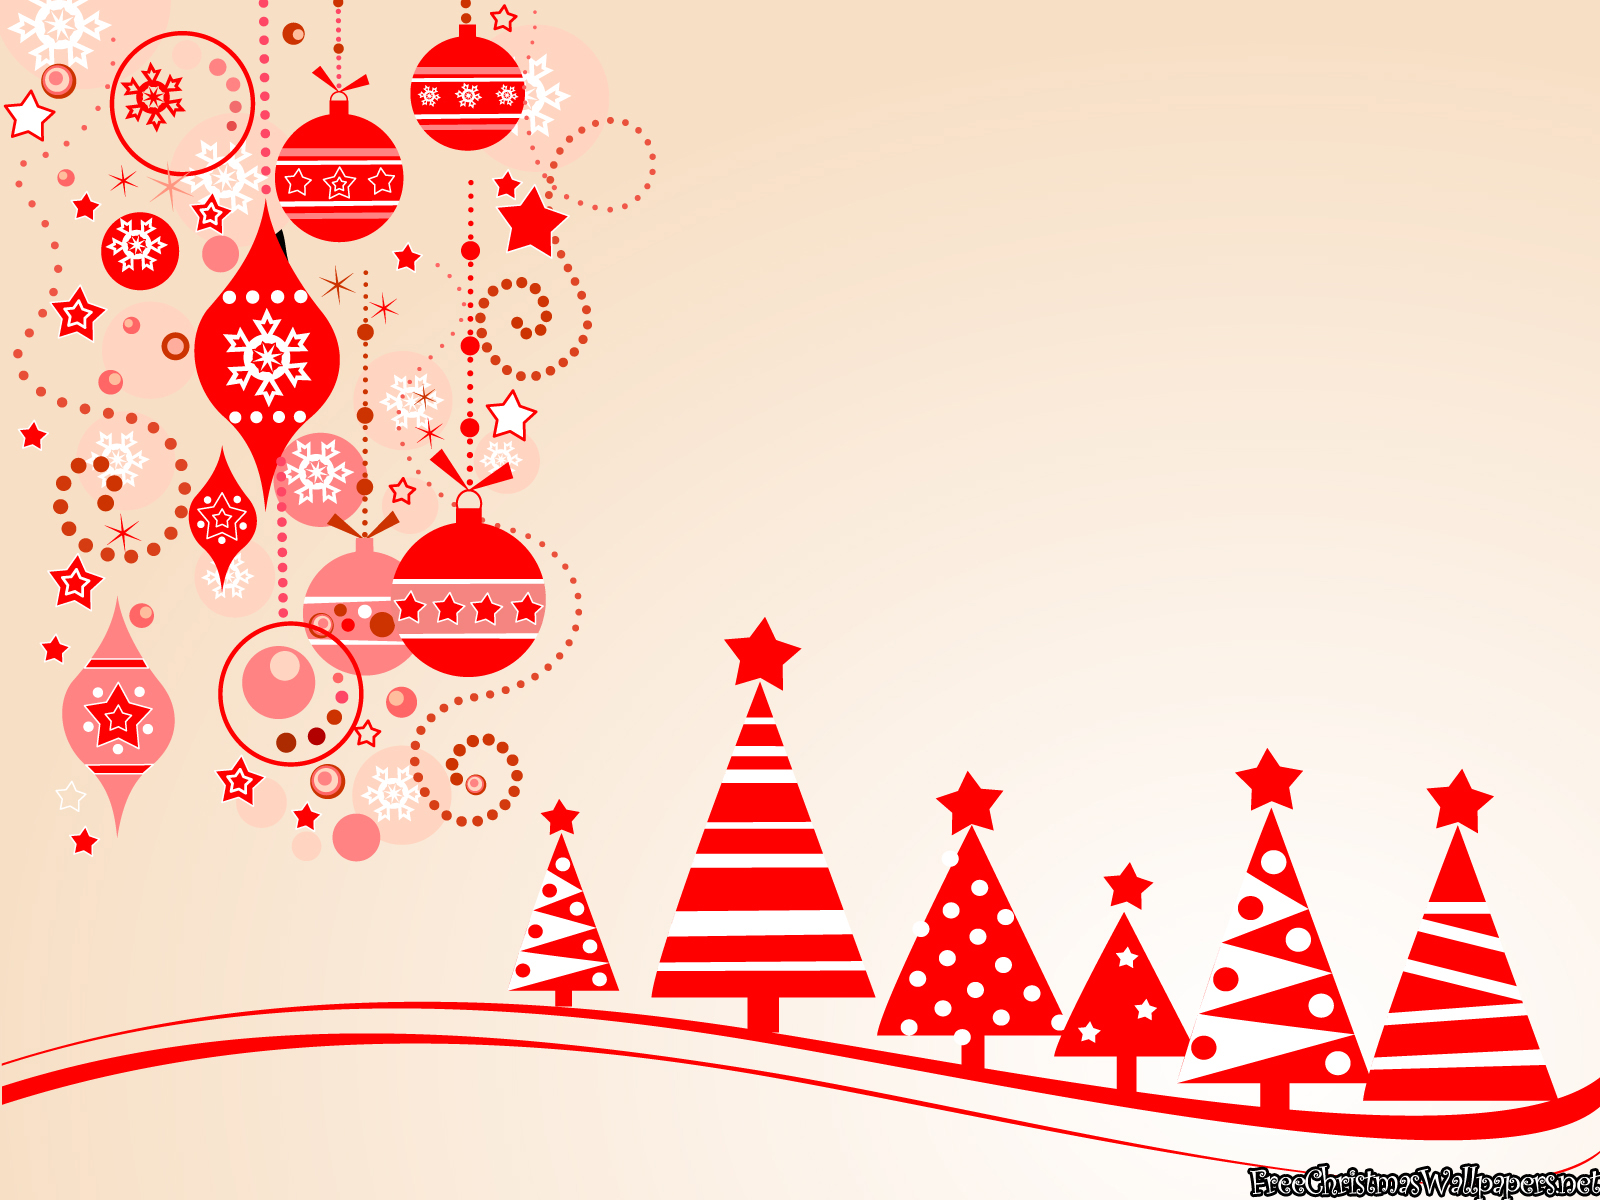 Christmas clip art free . - Free Christmas Clipart Backgrounds